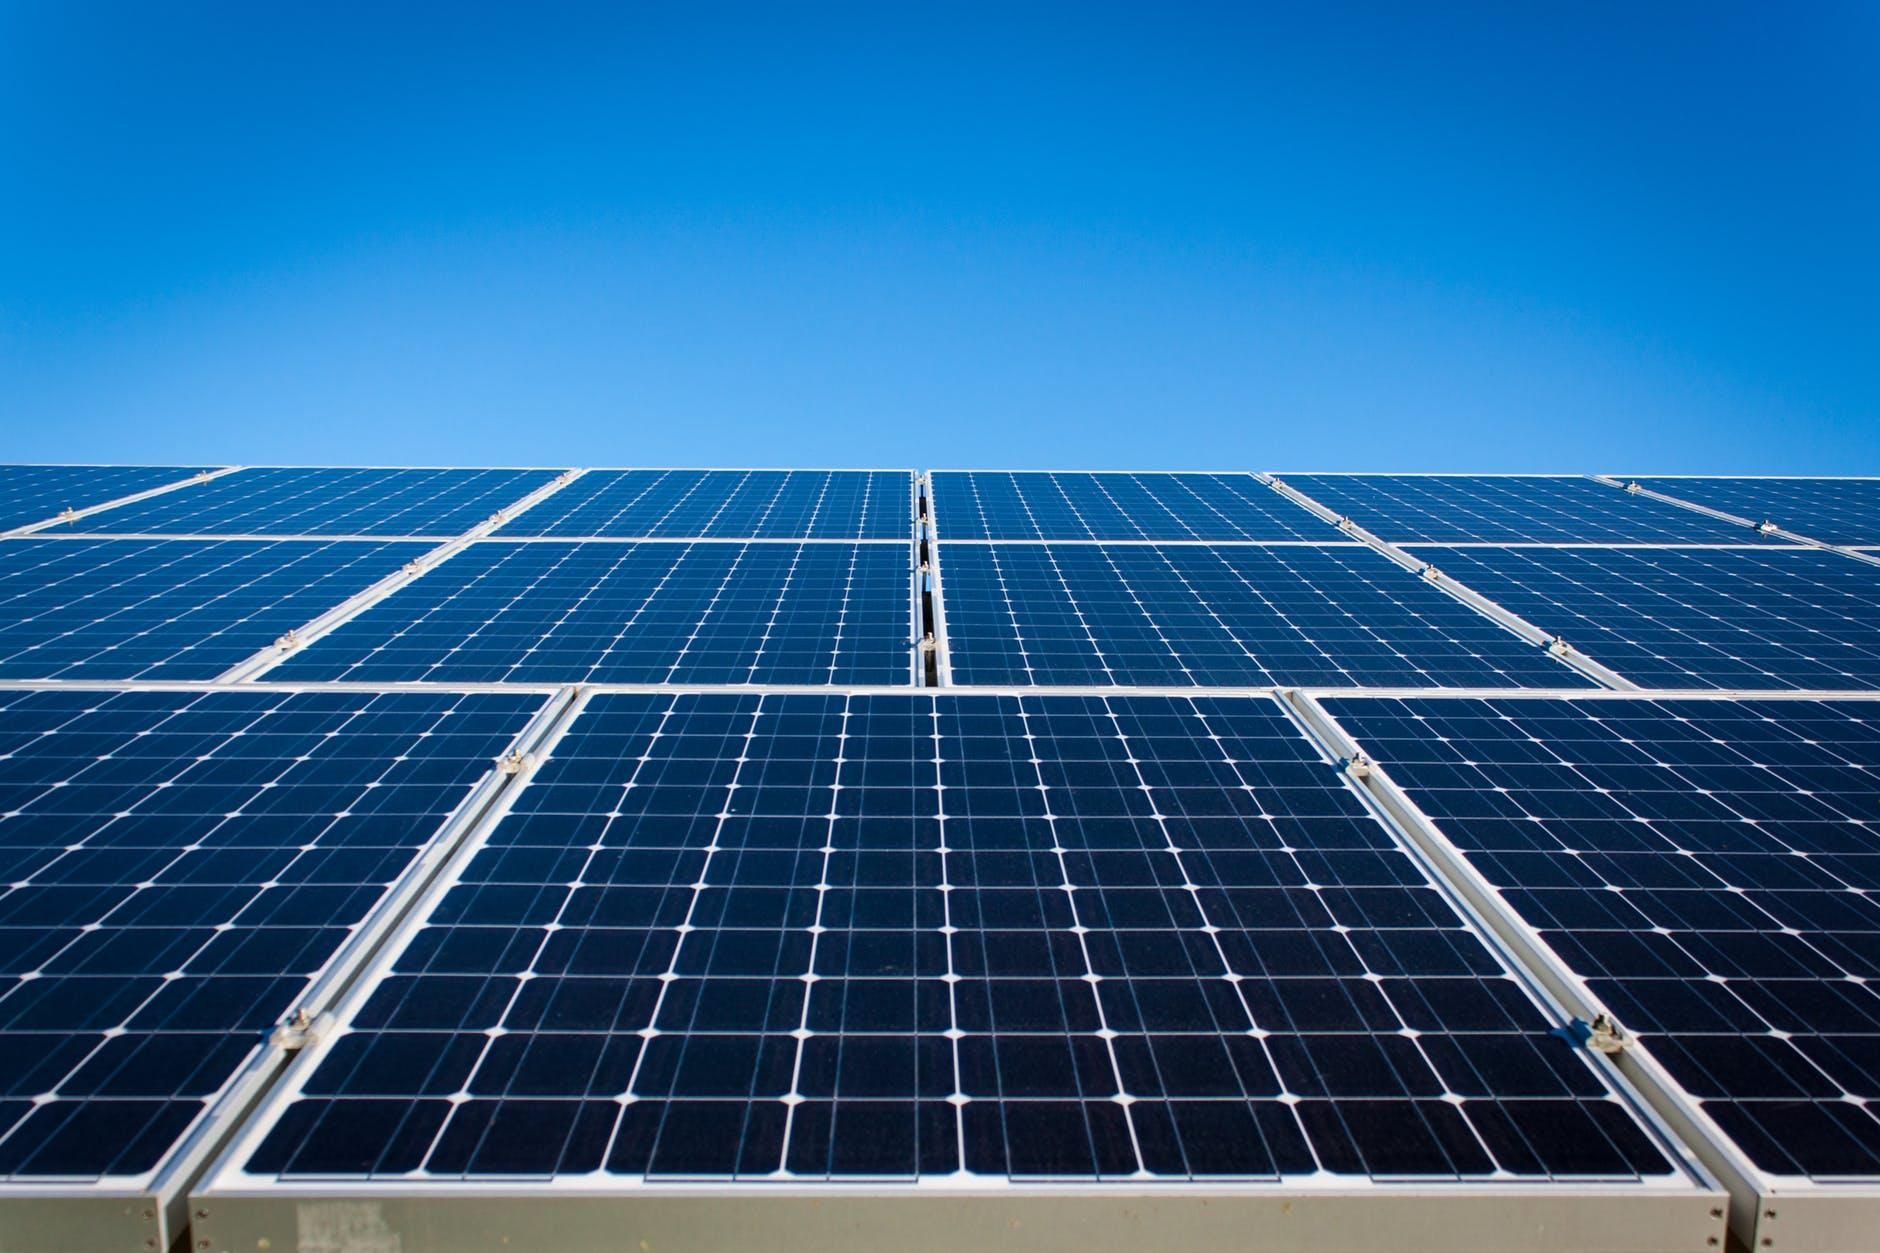 A New Report Says Solar Energy Could Grow 6 500 By 2050 Panneau Solaire Solaire Energie Solaire